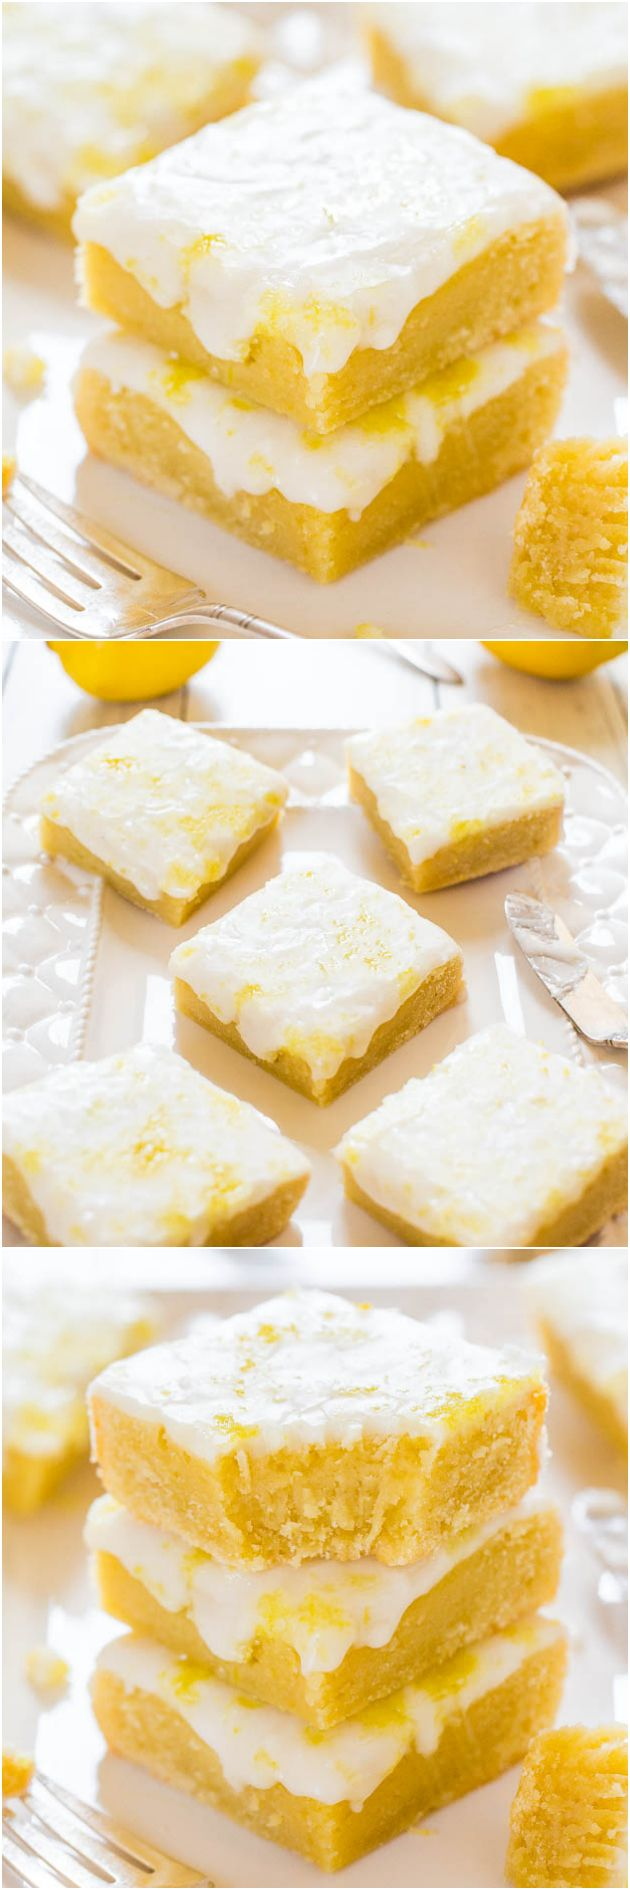 Lemon Lemonies - Like brownies, but made with lemon and white chocolate! Dense, chewy, not cakey and packed with big, bold lemon flavor! (lemon bars, desserts) @averie